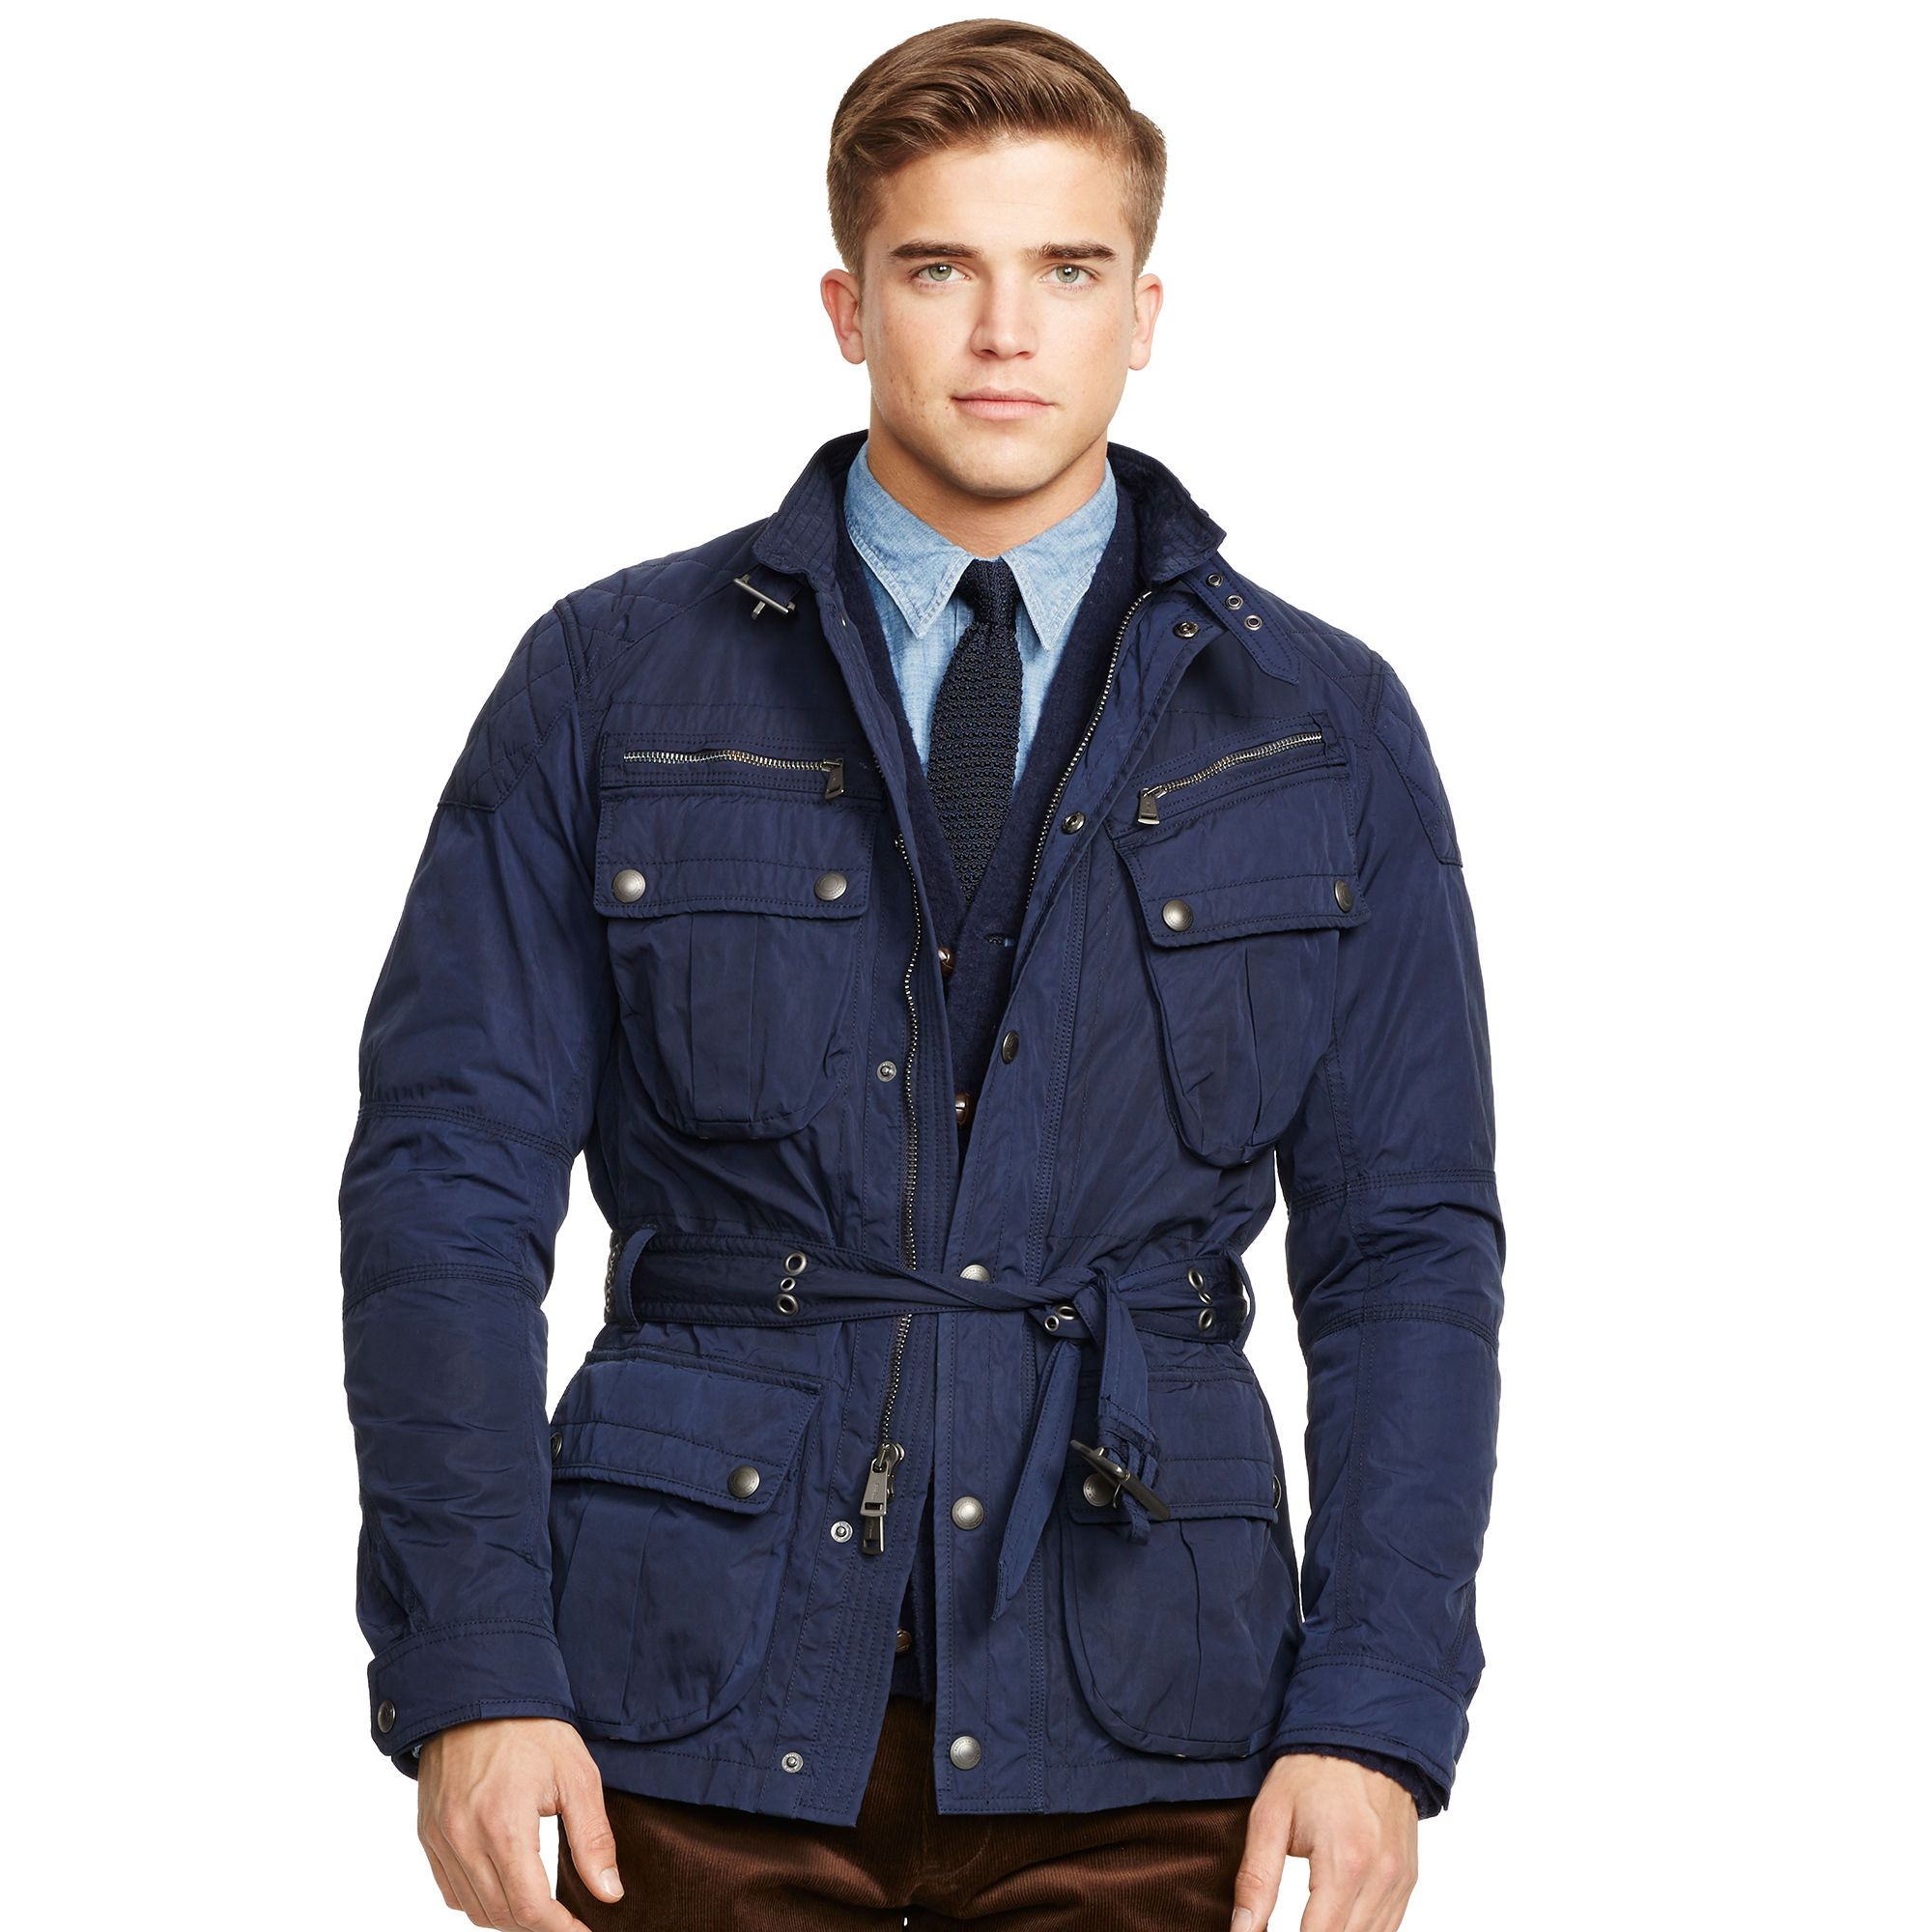 p black jacket quilt padded coats jackets c quilted ralph polo fashion down and mens nylon lauren